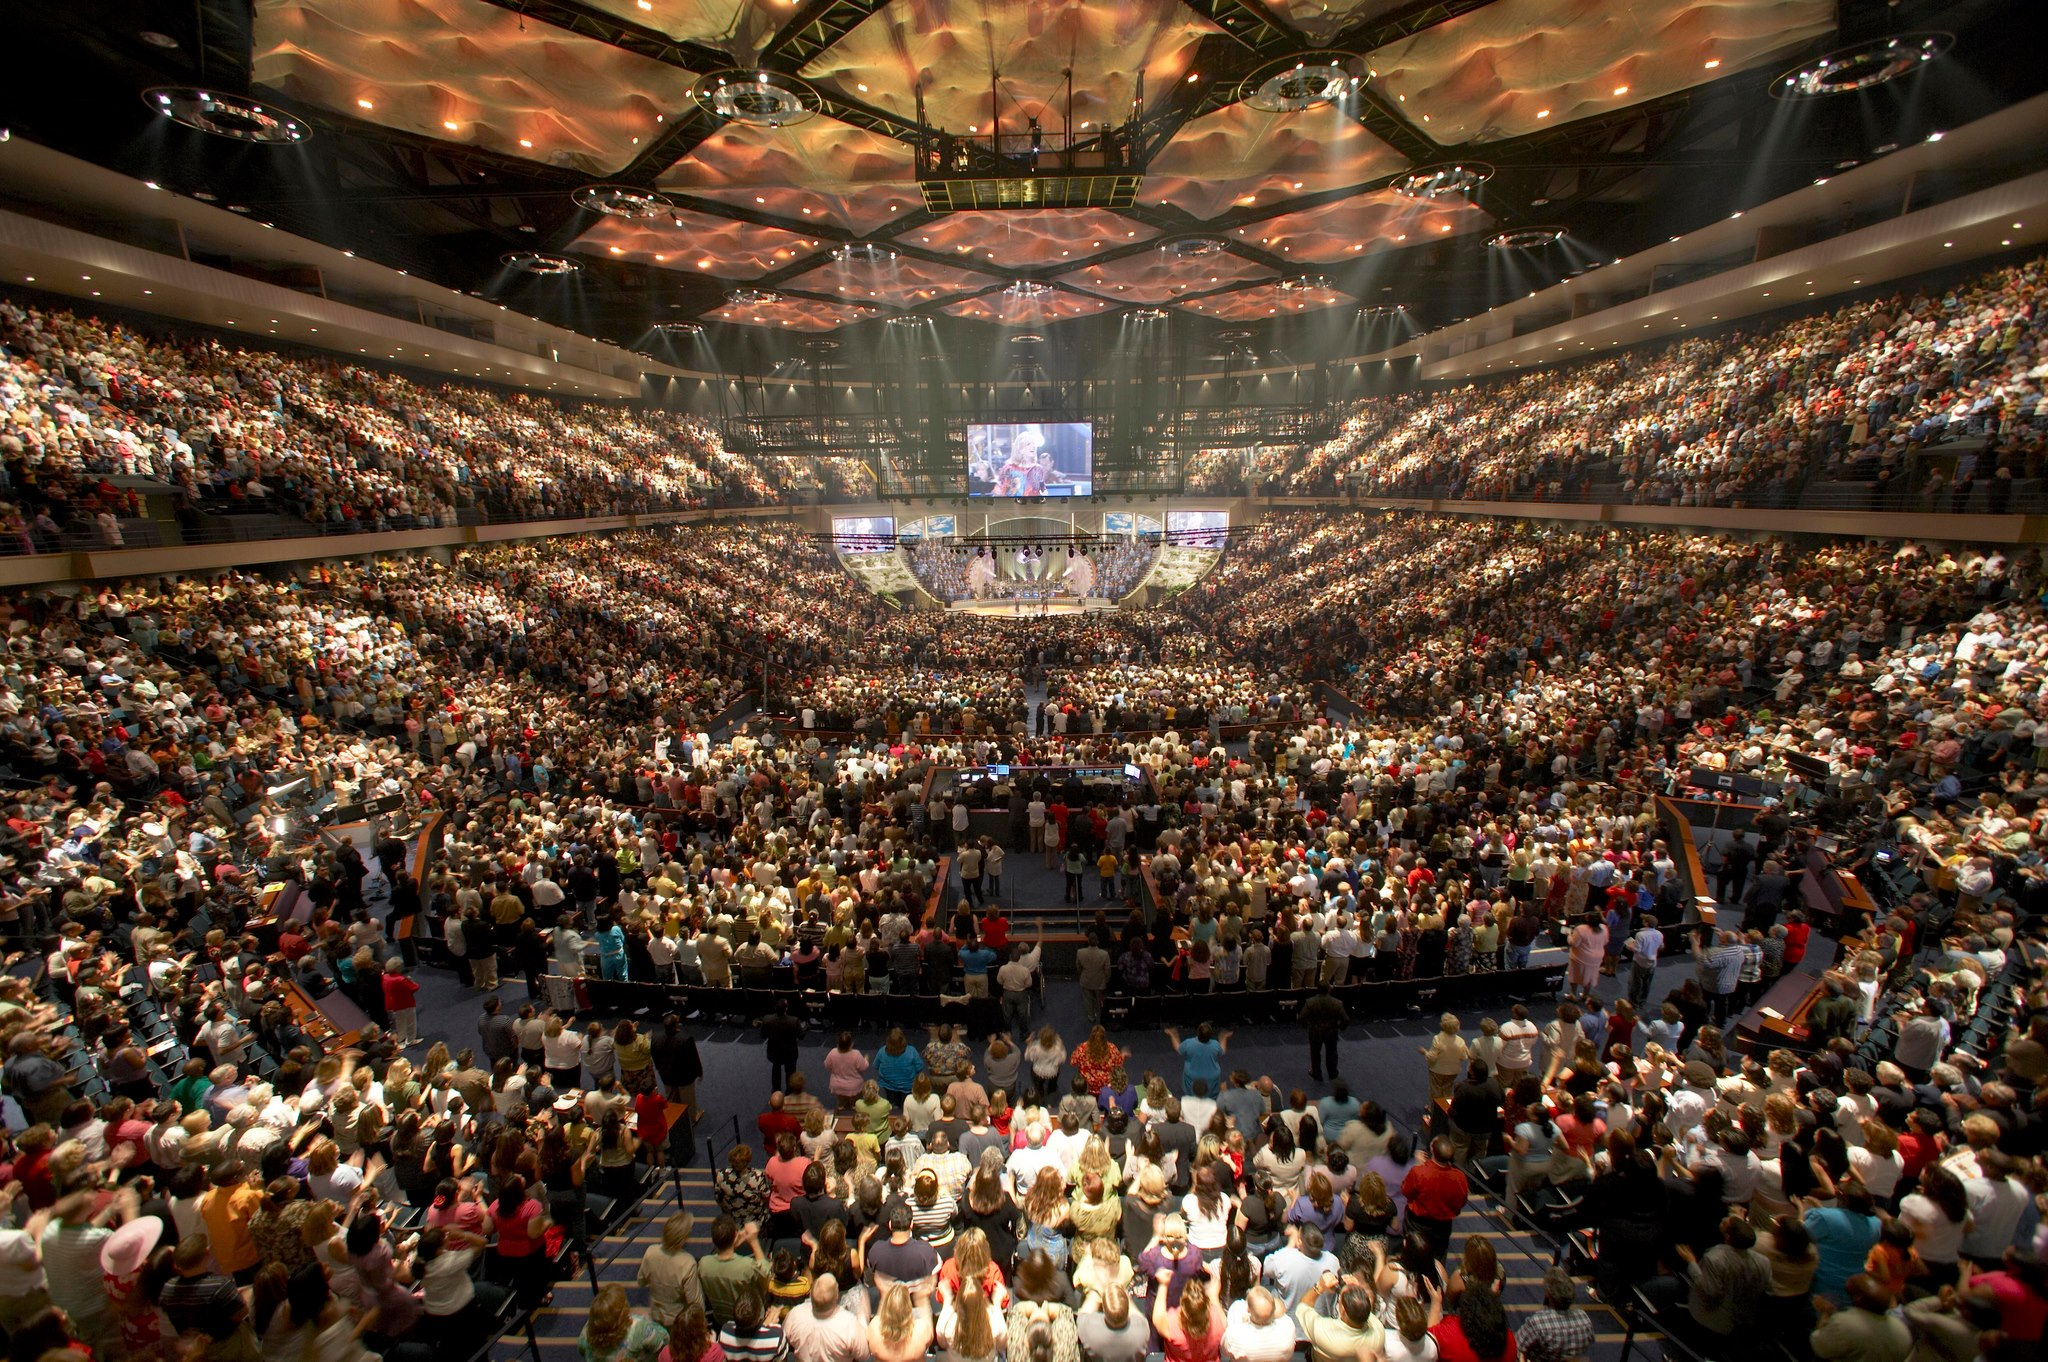 The mega-churches making mega-bucks